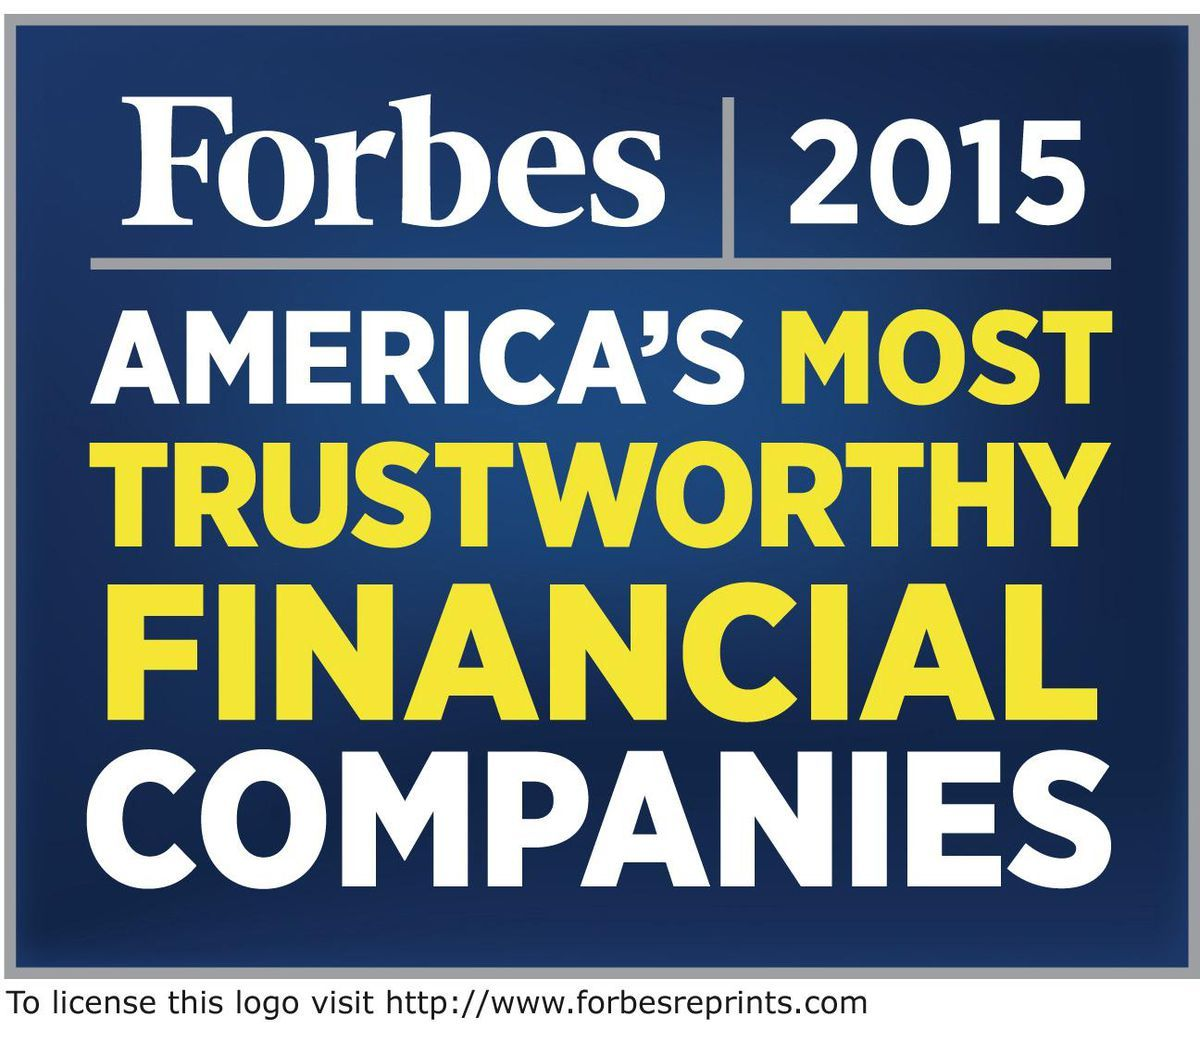 Earlier This Year Forbes Released The 2015 List Of The 100 Most